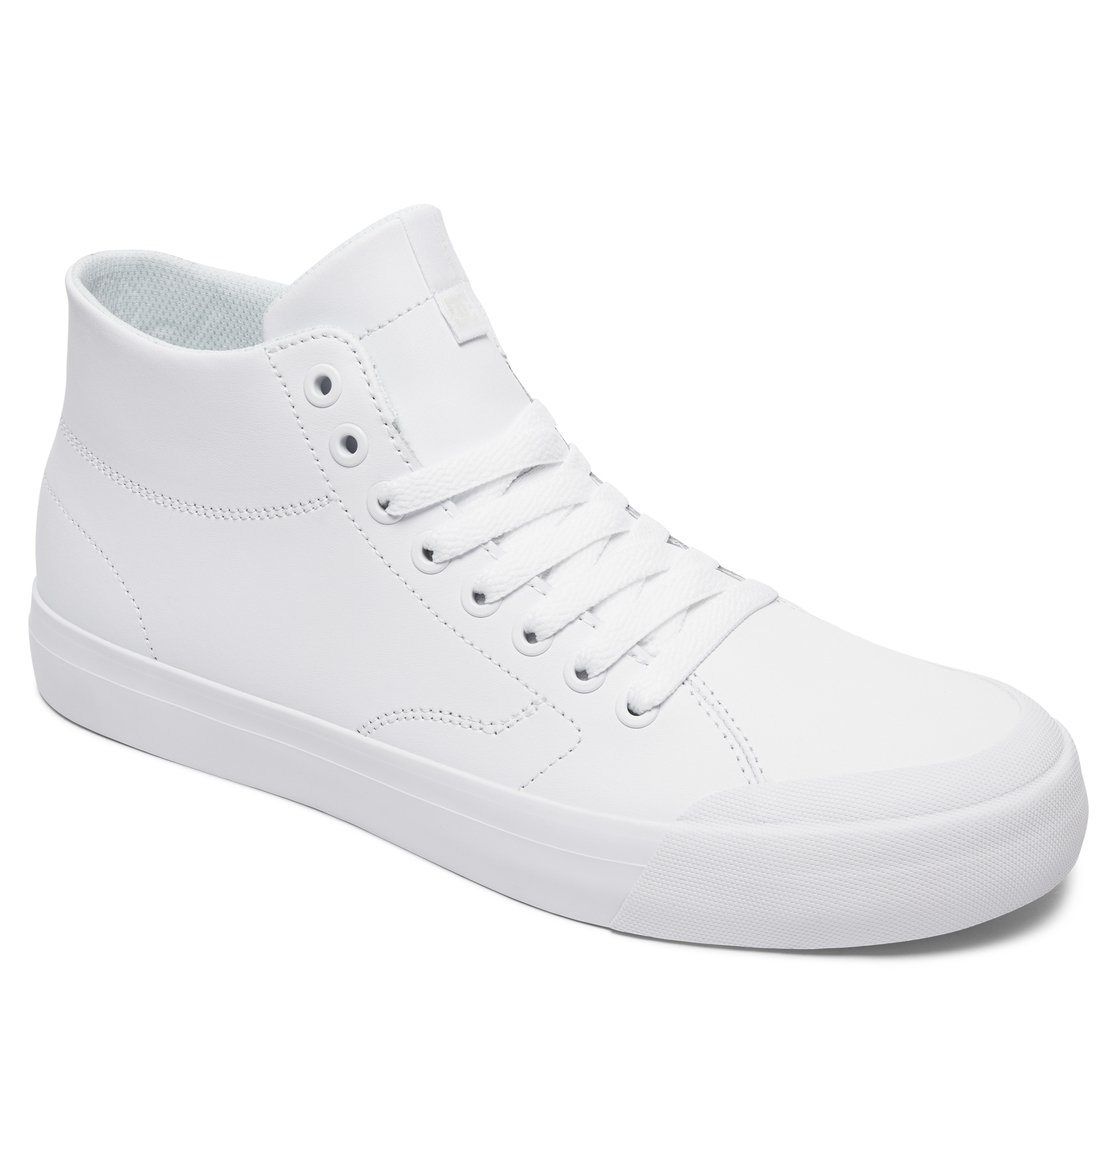 01fd536353d 1 Evan Smith Hi Zero - Zapatillas de caña alta para Hombre Blanco  ADYS300423 DC Shoes